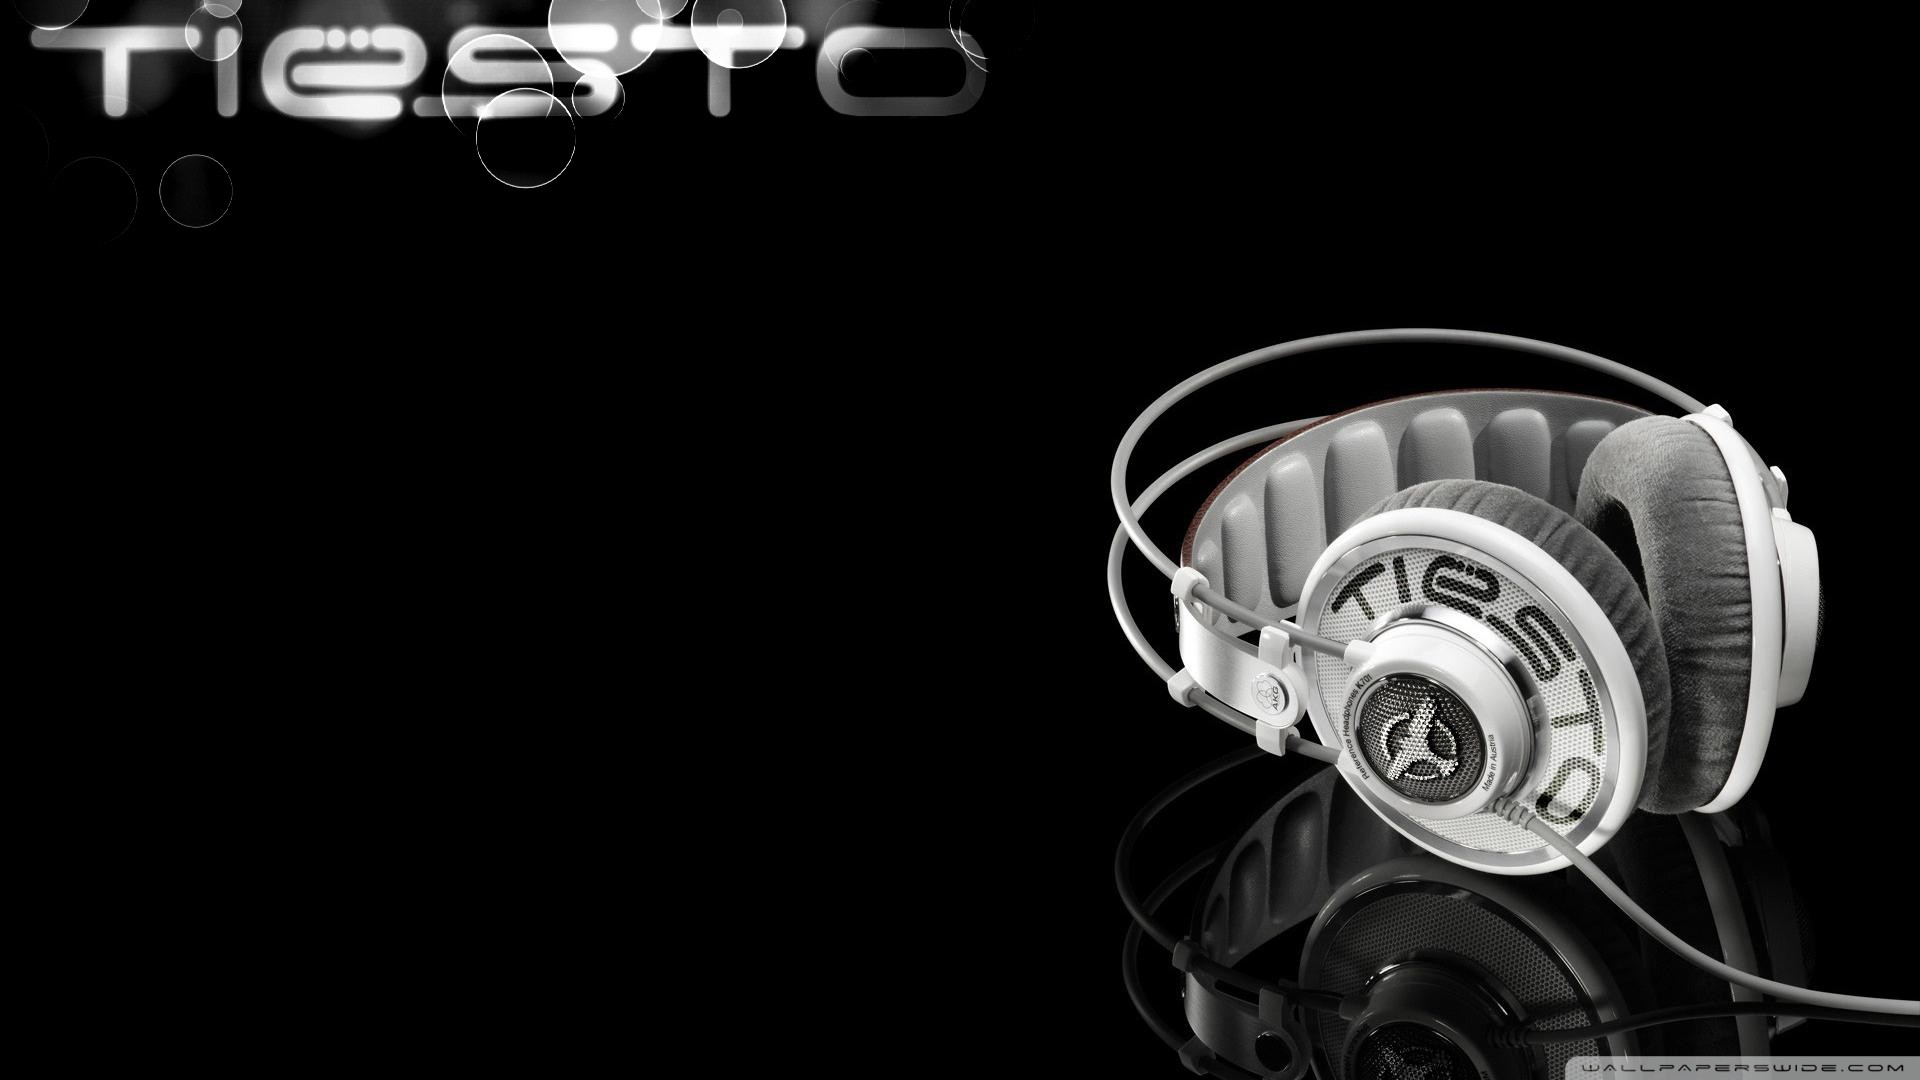 Res: 1920x1080, Tiesto Headphones wallpaper. Â«Â«